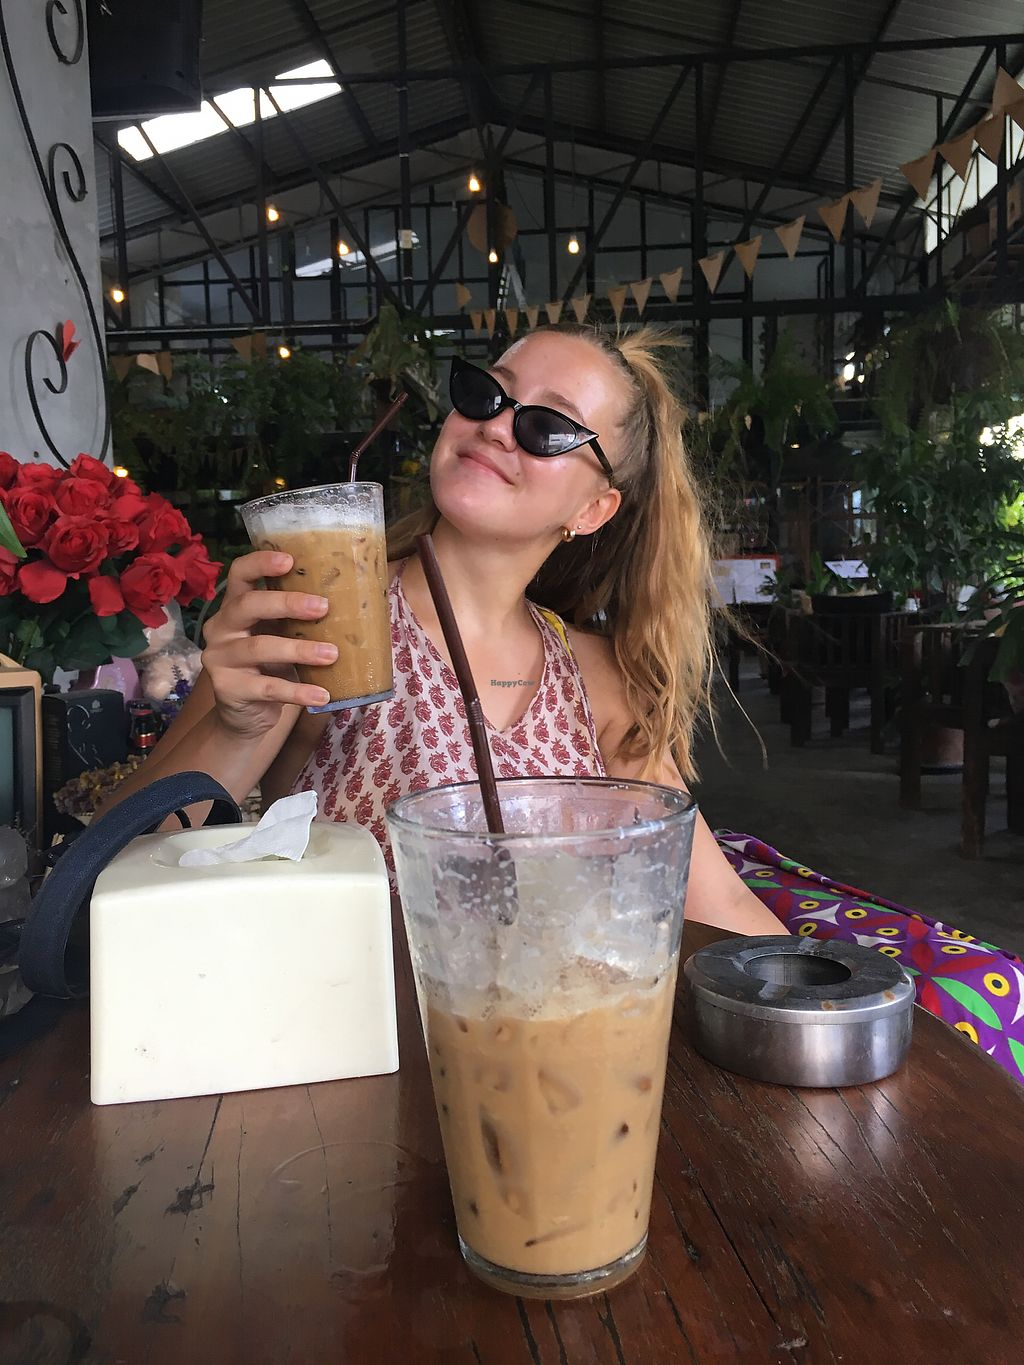 """Photo of Cube No.7  by <a href=""""/members/profile/kira"""">kira</a> <br/>Ice coffee with soymilk <br/> December 31, 2017  - <a href='/contact/abuse/image/102601/341242'>Report</a>"""